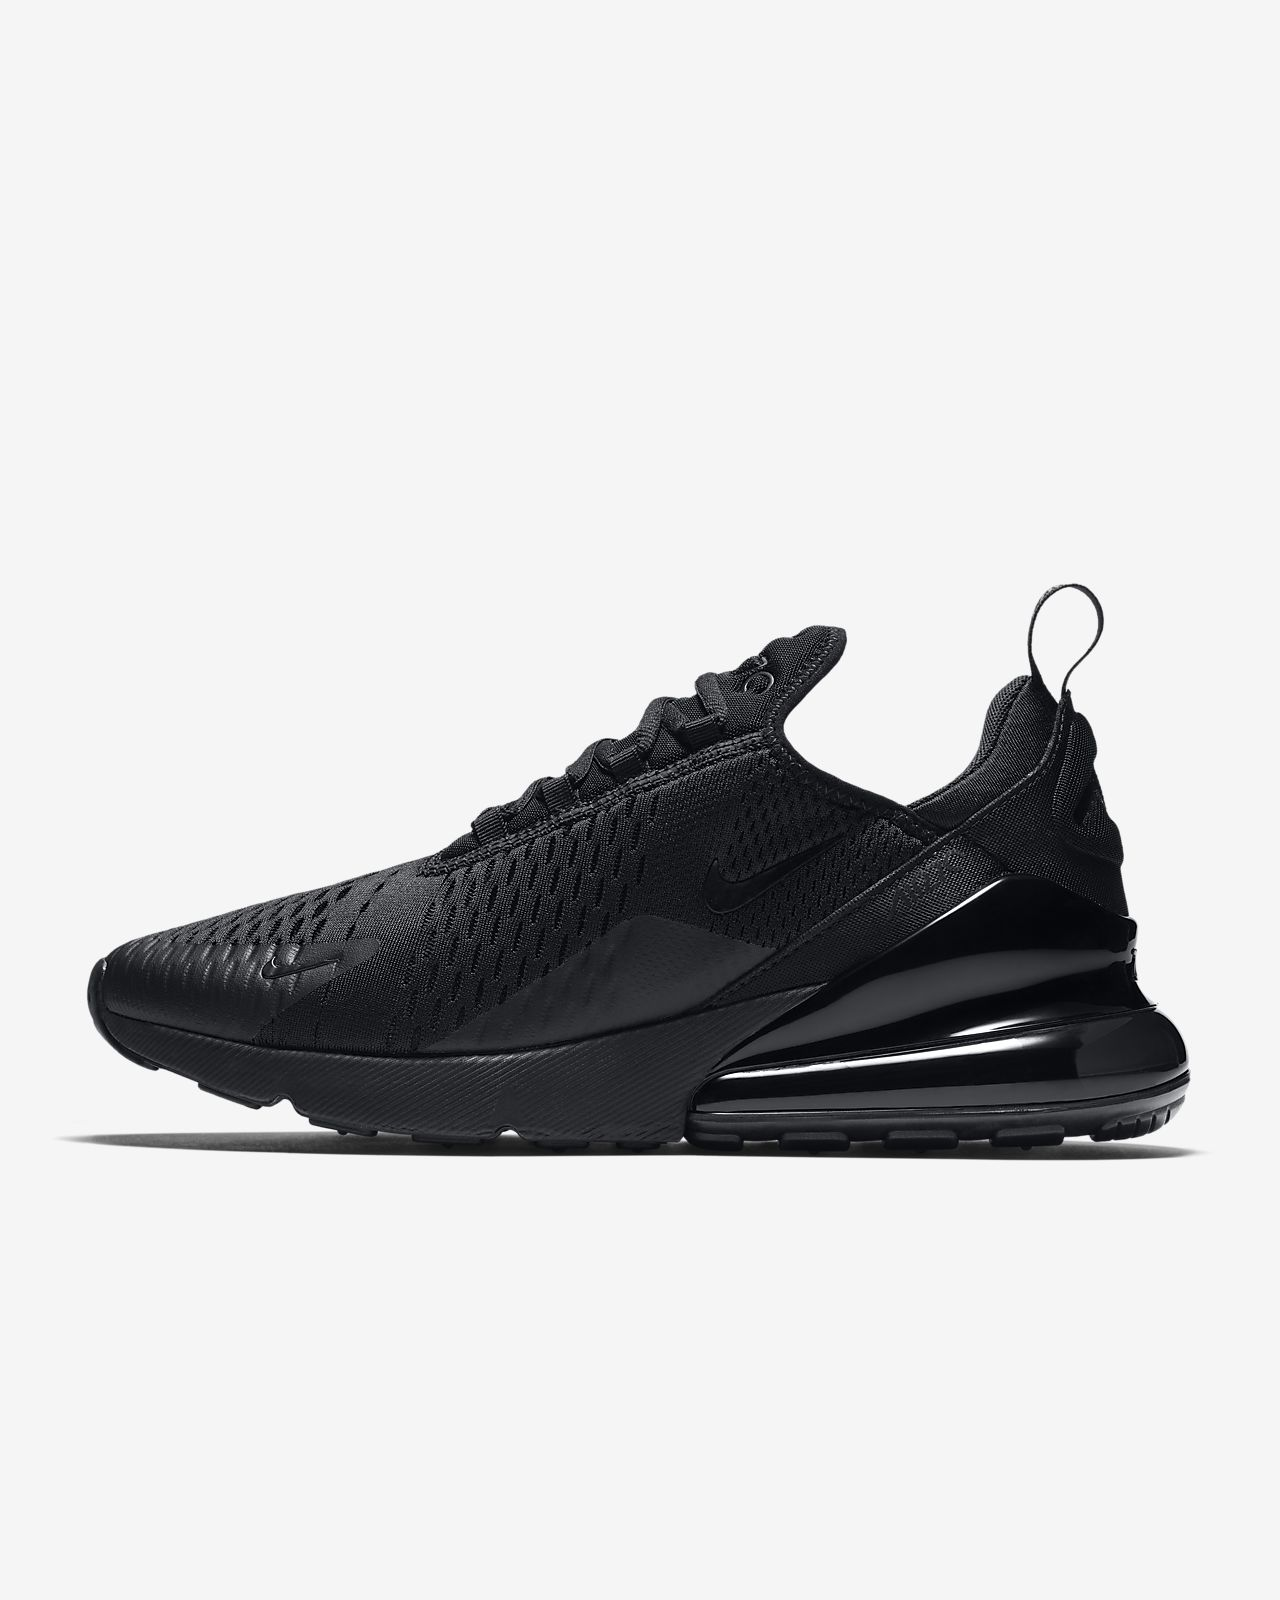 803fec6e8ad5ff Nike Air Max 270 Men s Shoe. Nike.com CA